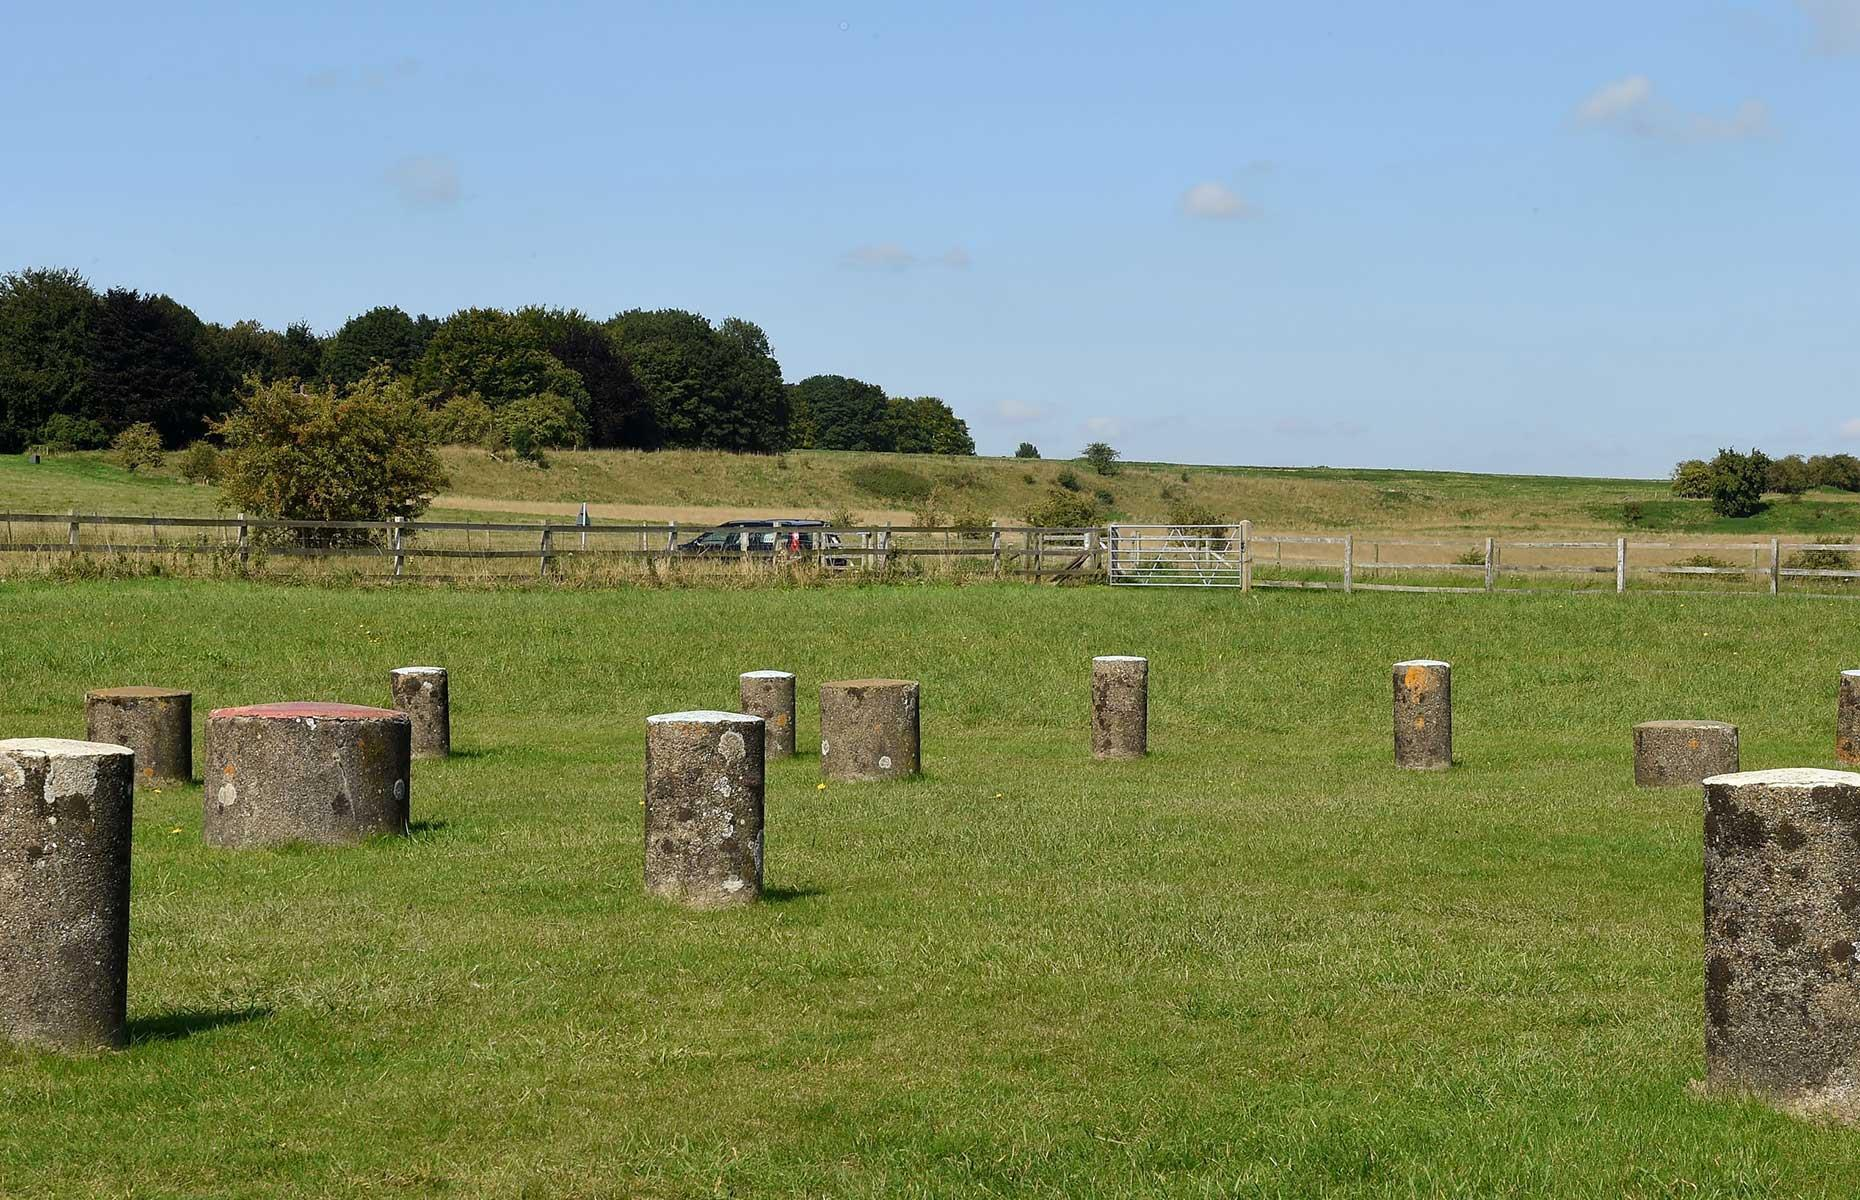 Slide 4 of 31: A circle of vast prehistoric shafts has been discovered just under two miles (3.2km) from Stonehenge. The 20 shafts– more than 33 feet (10m) in diameter and 16.4 feet (5m) deep – seem to have been designed to create a circle around Durrington Walls henge (pictured here) and Woodhenge, another smaller prehistoric circle to the south. Radiocarbon dating revealed the shafts are 4,500 years old and from the Neolithic period. It's likely the same people who constructed Stonehenge built the shafts at Durrington Walls, now the largest prehistoric site discovered to date in the UK.